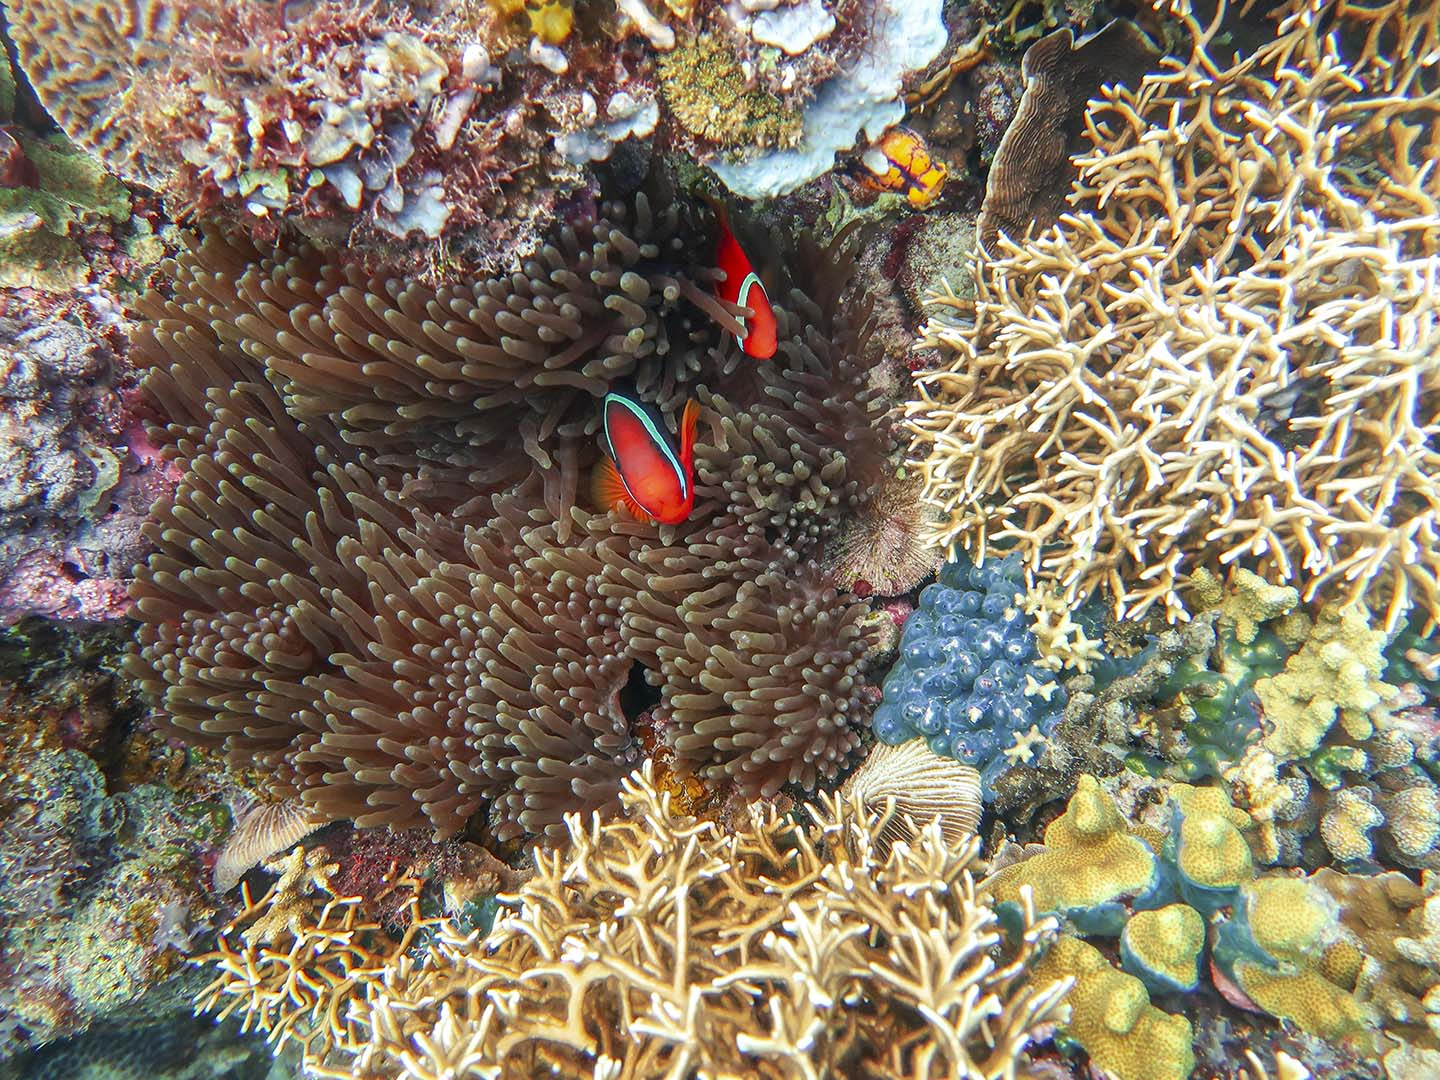 Scuba Diving Siquijor: Tomato Anemonefish surrounded by corals